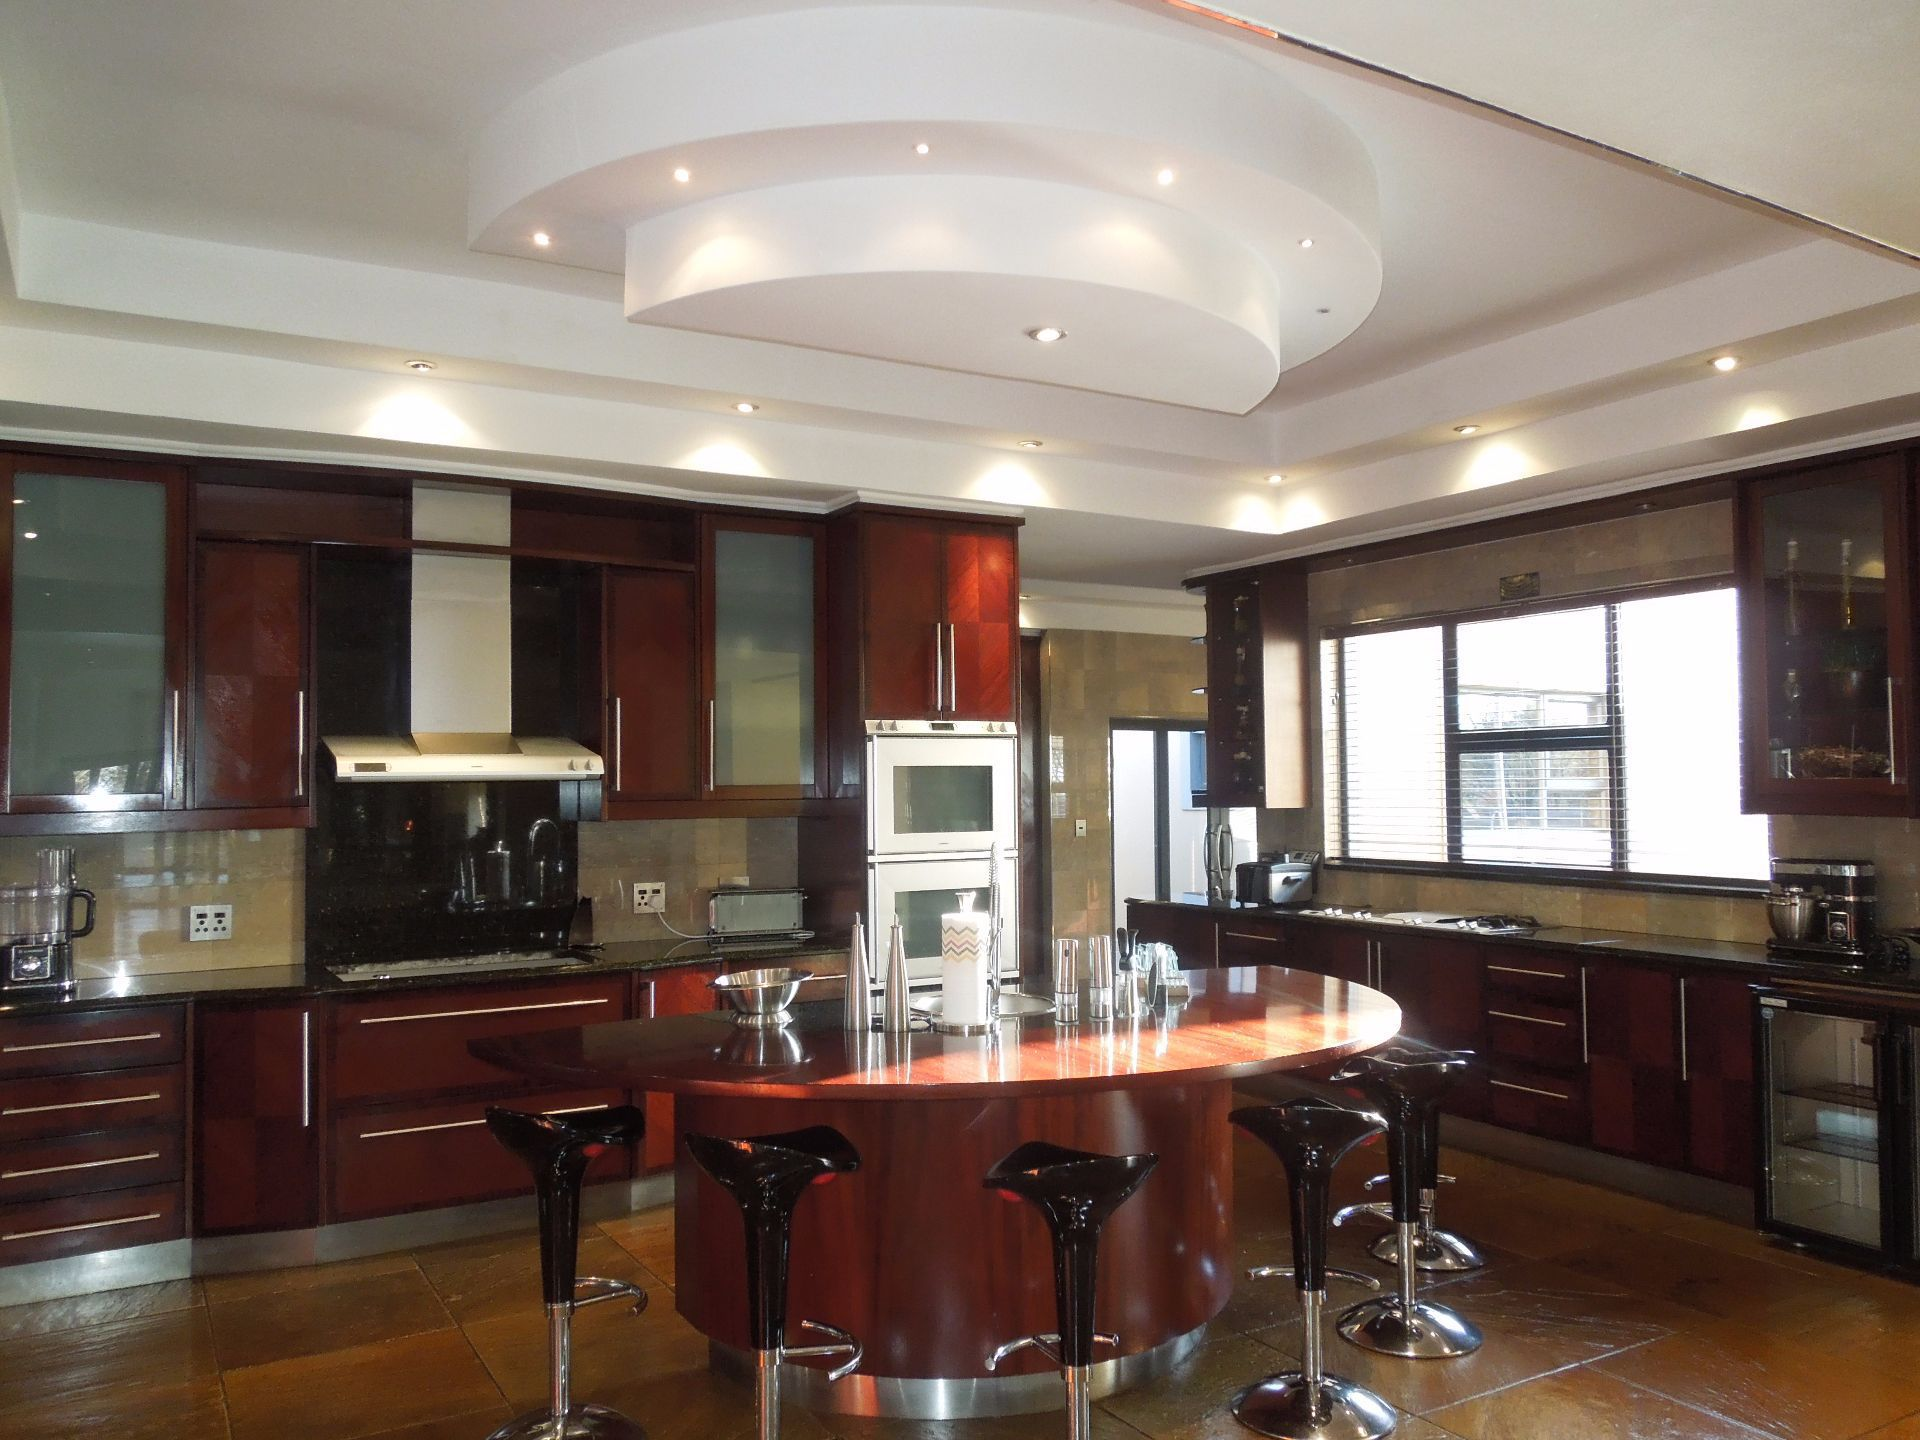 Chancliff A H property for sale. Ref No: 13575062. Picture no 21